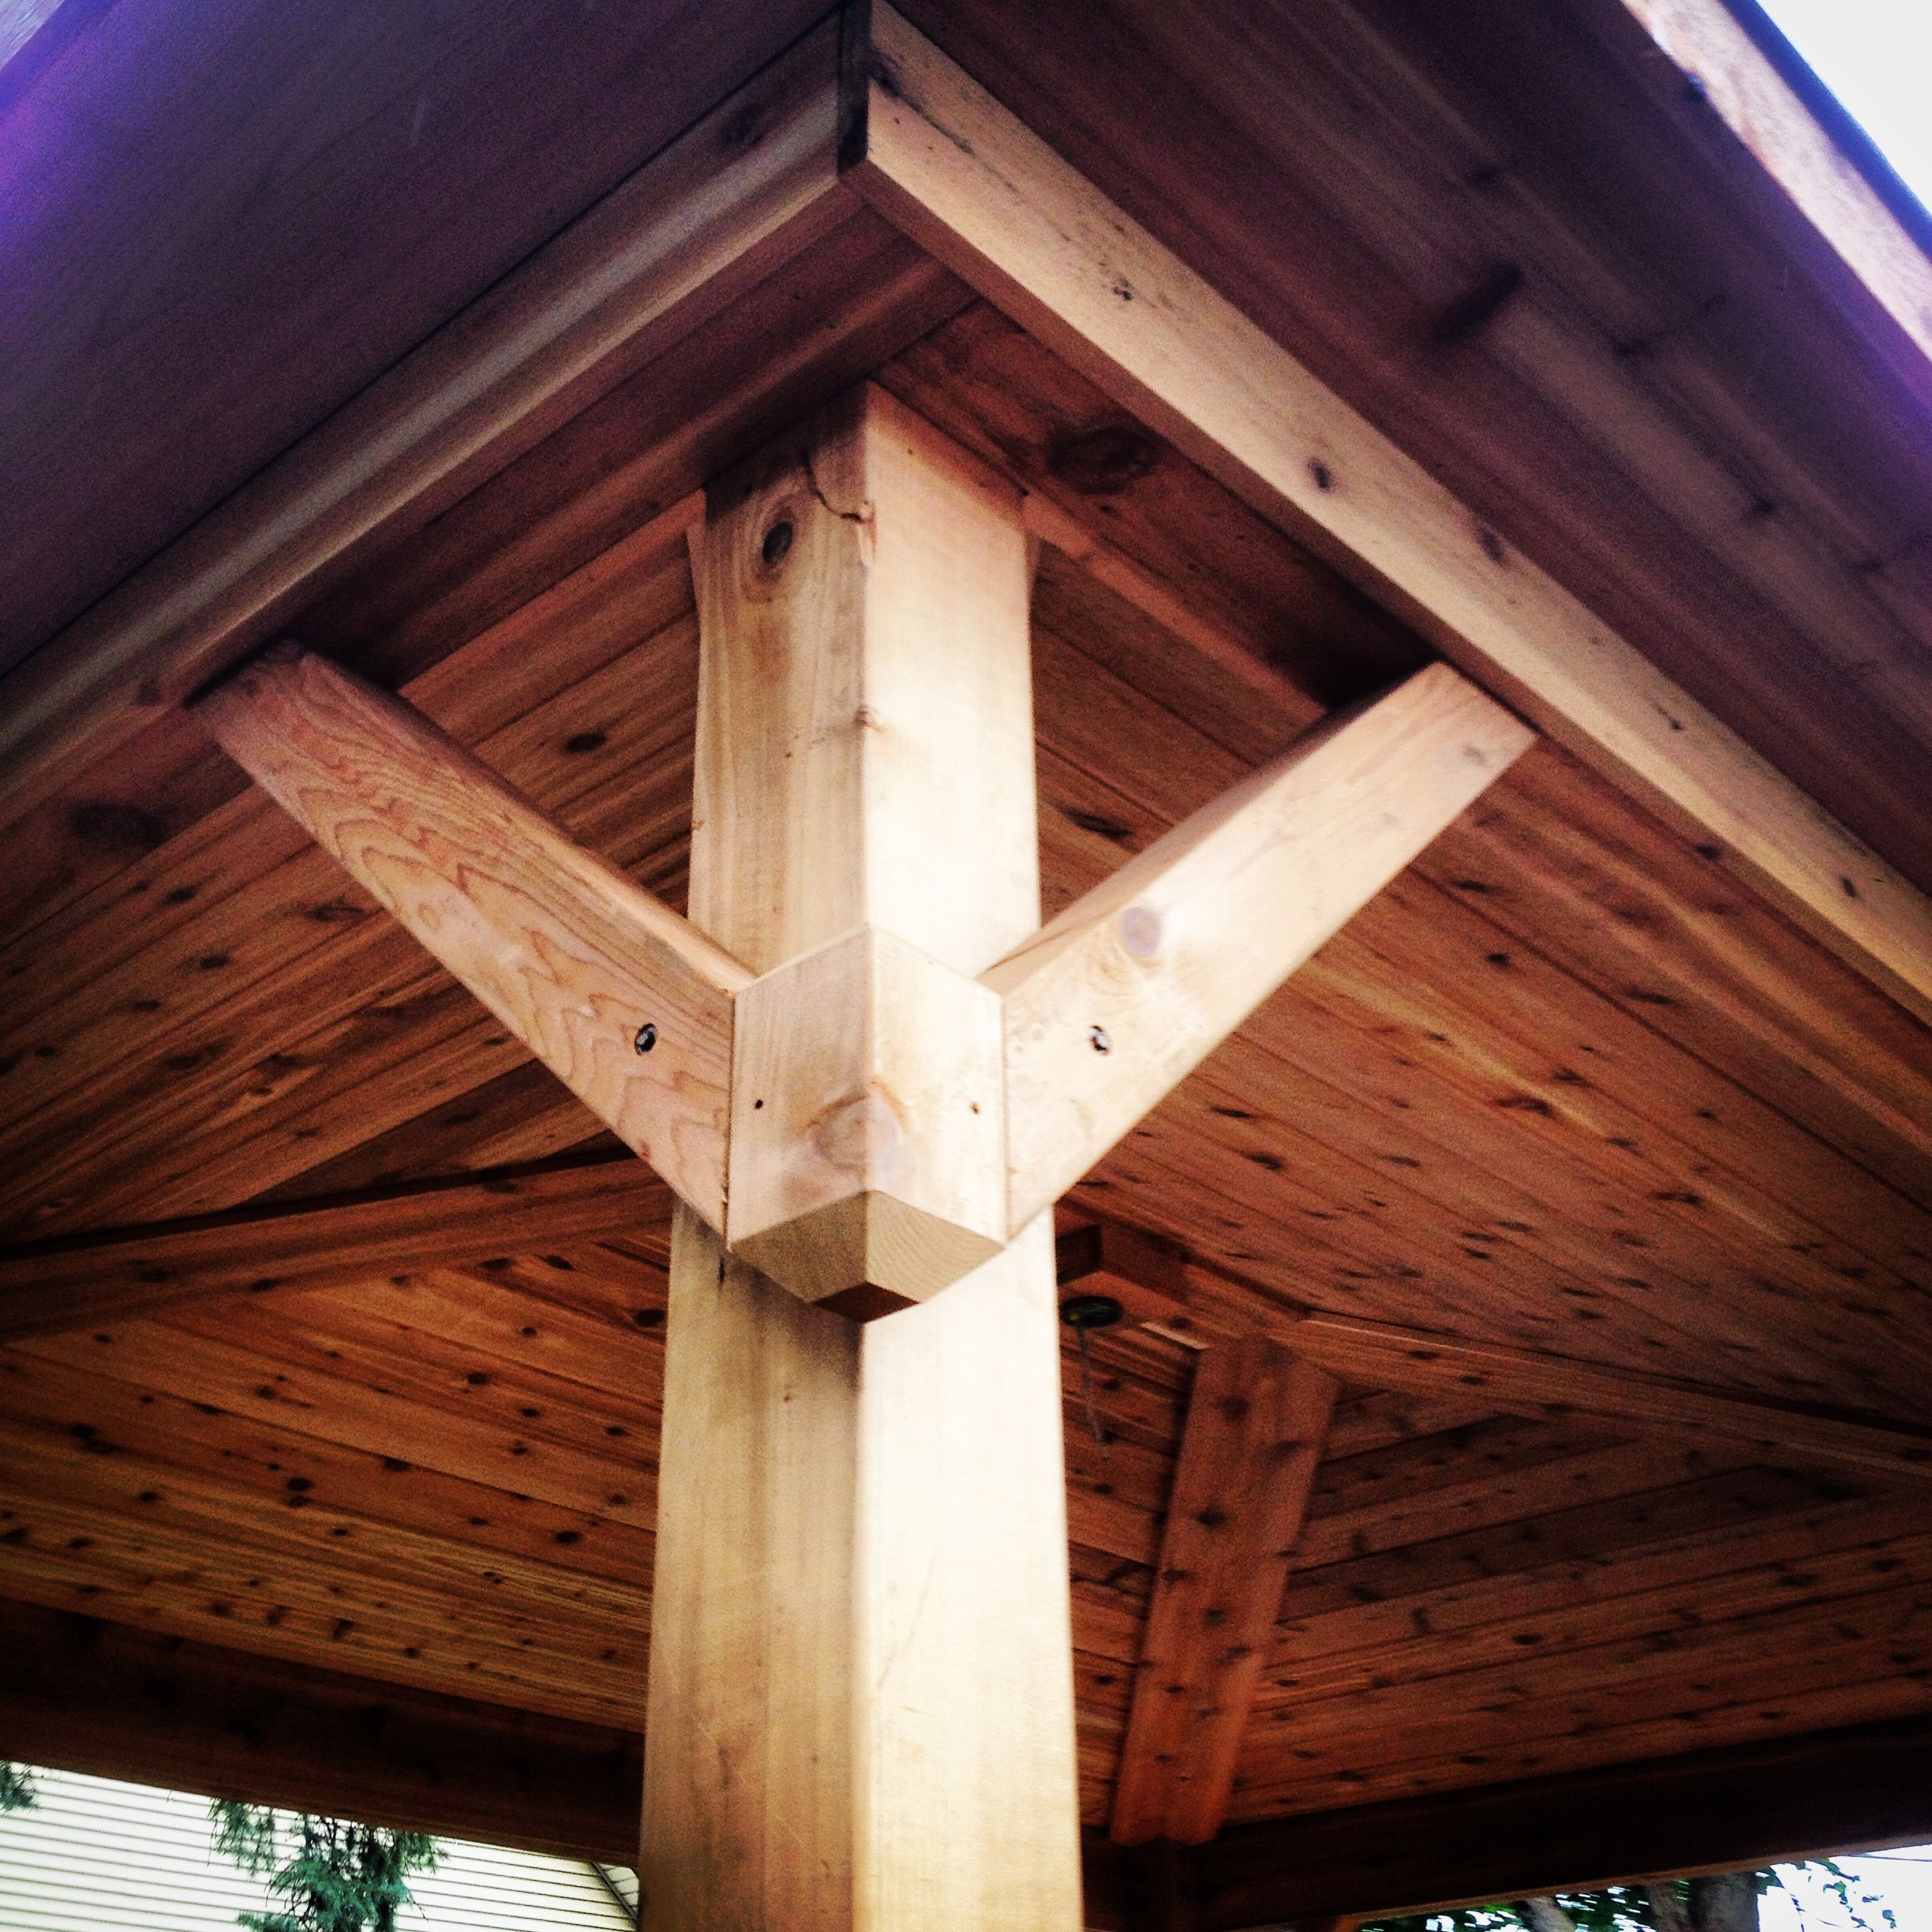 Pergola Ceiling Designs: Covered Porch Gusset Design. Pergola, Tongue And Groove